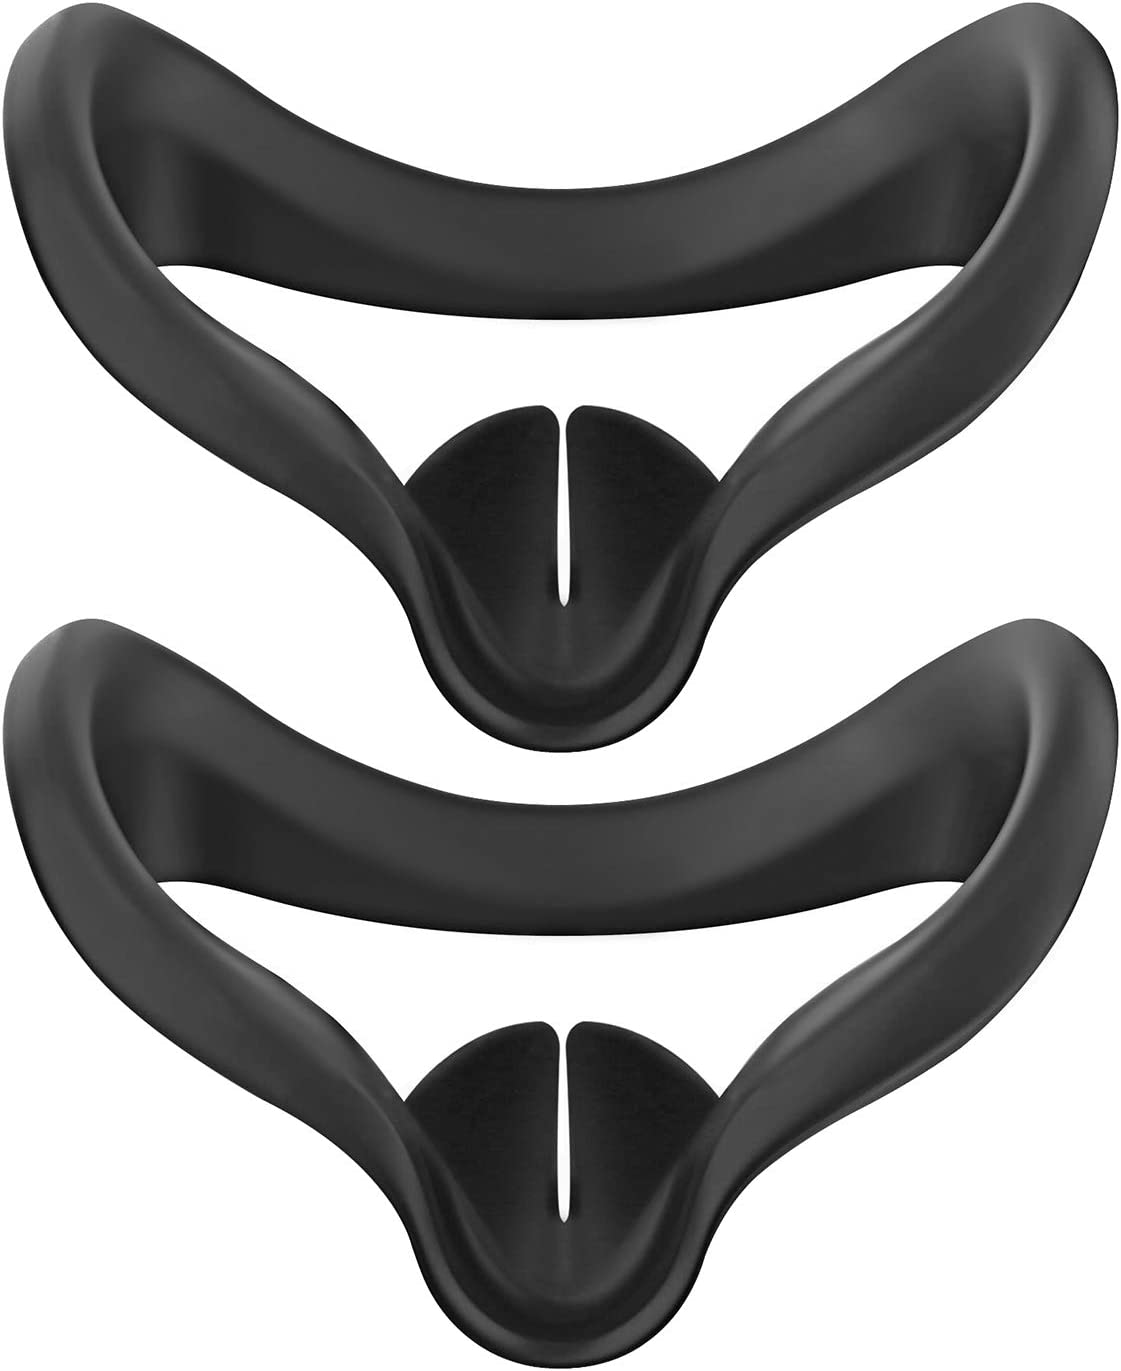 Esimen Silicone Mask Cover for Oculus Quest 2 Face Cushion Cover Sweatproof (Black+Black)